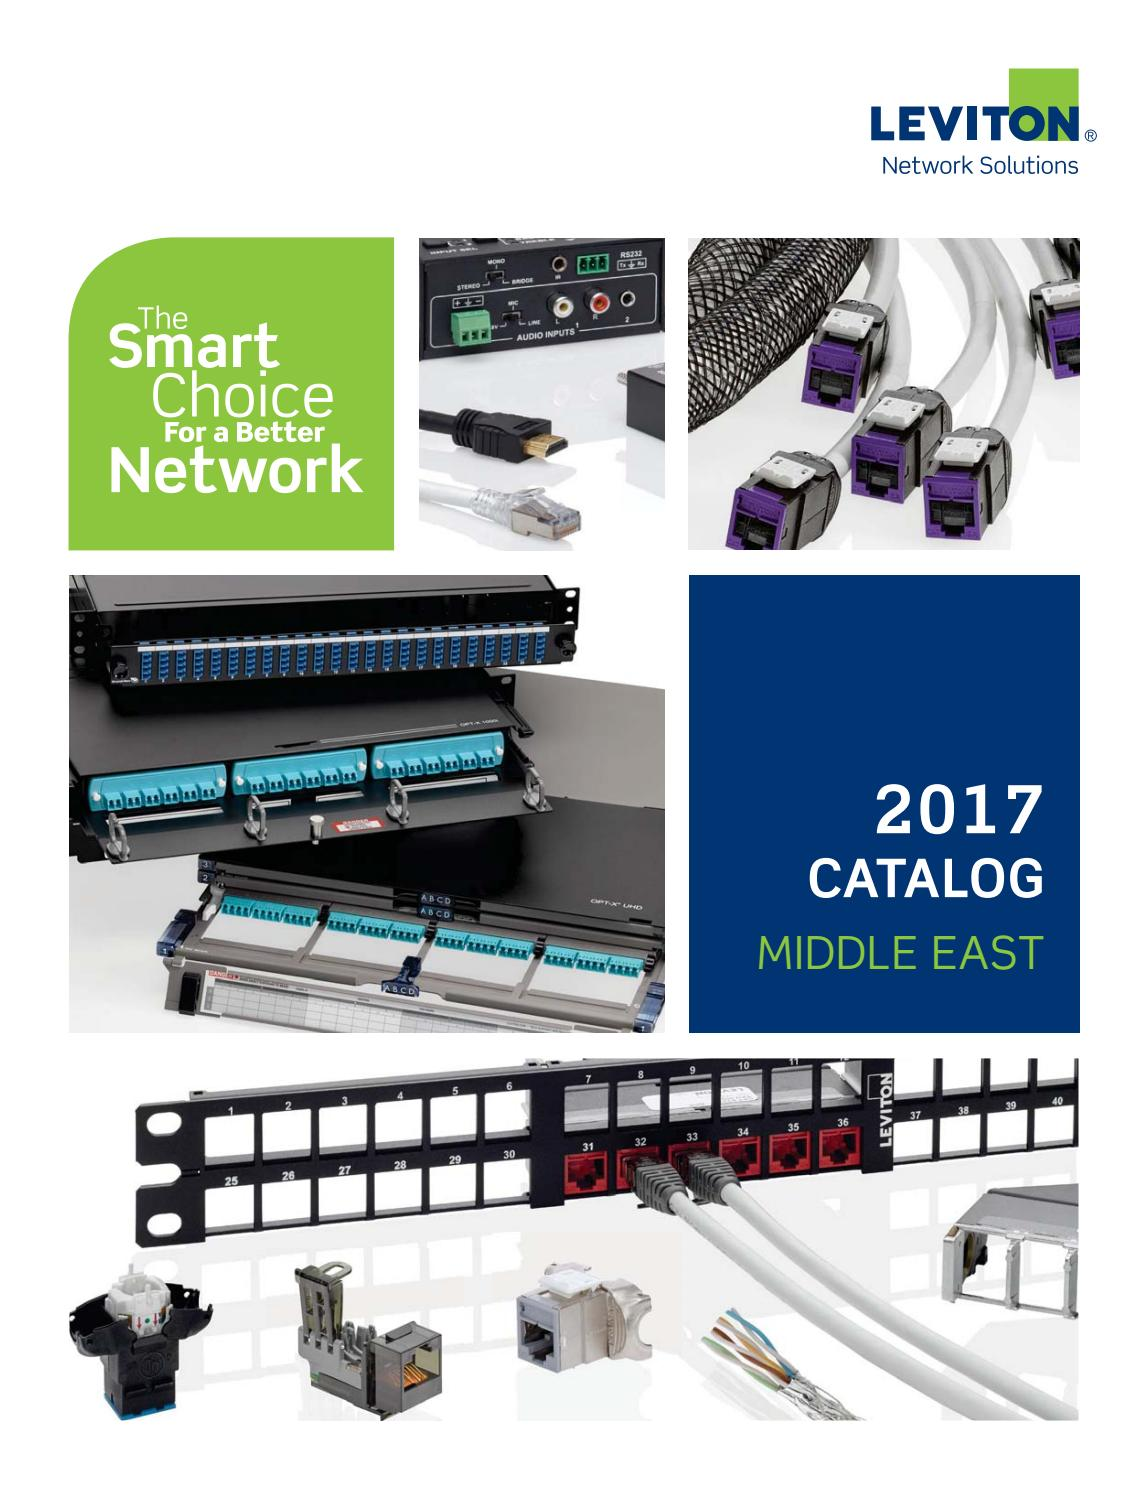 Leviton 2017 Catalogue Middle East By Sentor Electrical Issuu Klein 90 To 240v Ac Digital Circuit Breaker Finder Trade Me